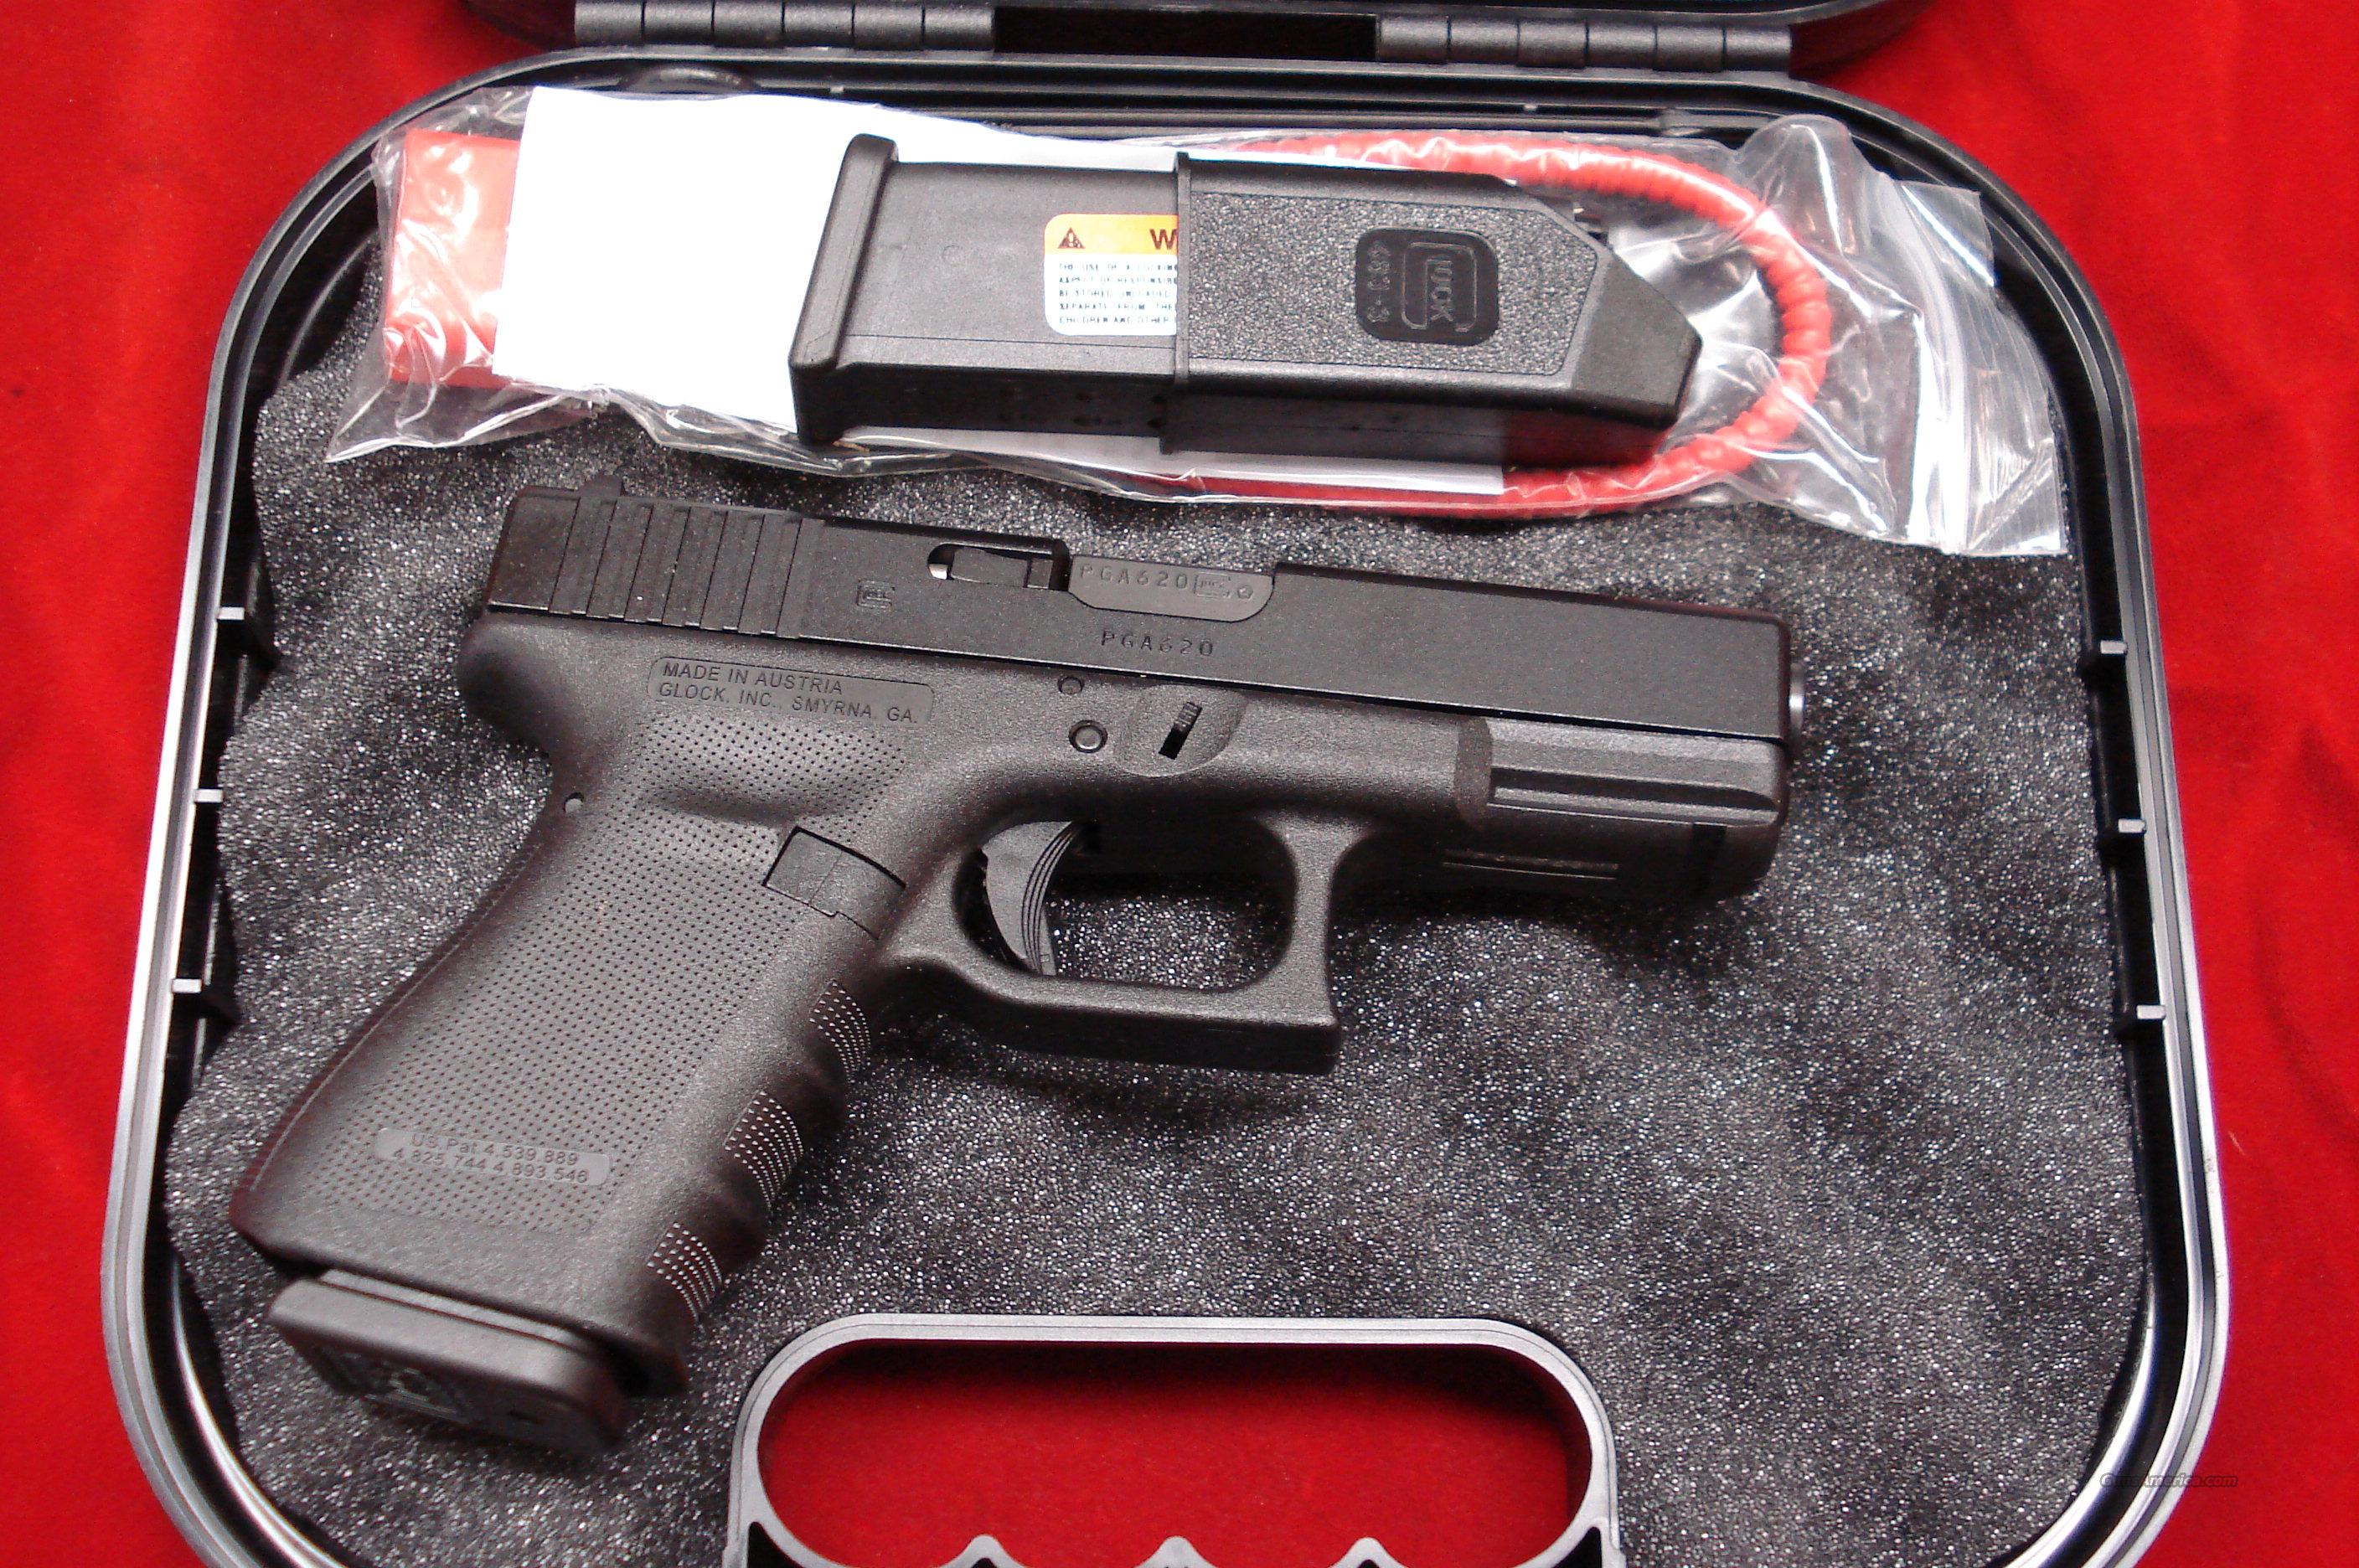 GLOCK NEW MODEL 23 RTF2 (ROUGH TEXTURE FRAME) HIGH CAPACITY NEW   Guns > Pistols > Glock Pistols > 23